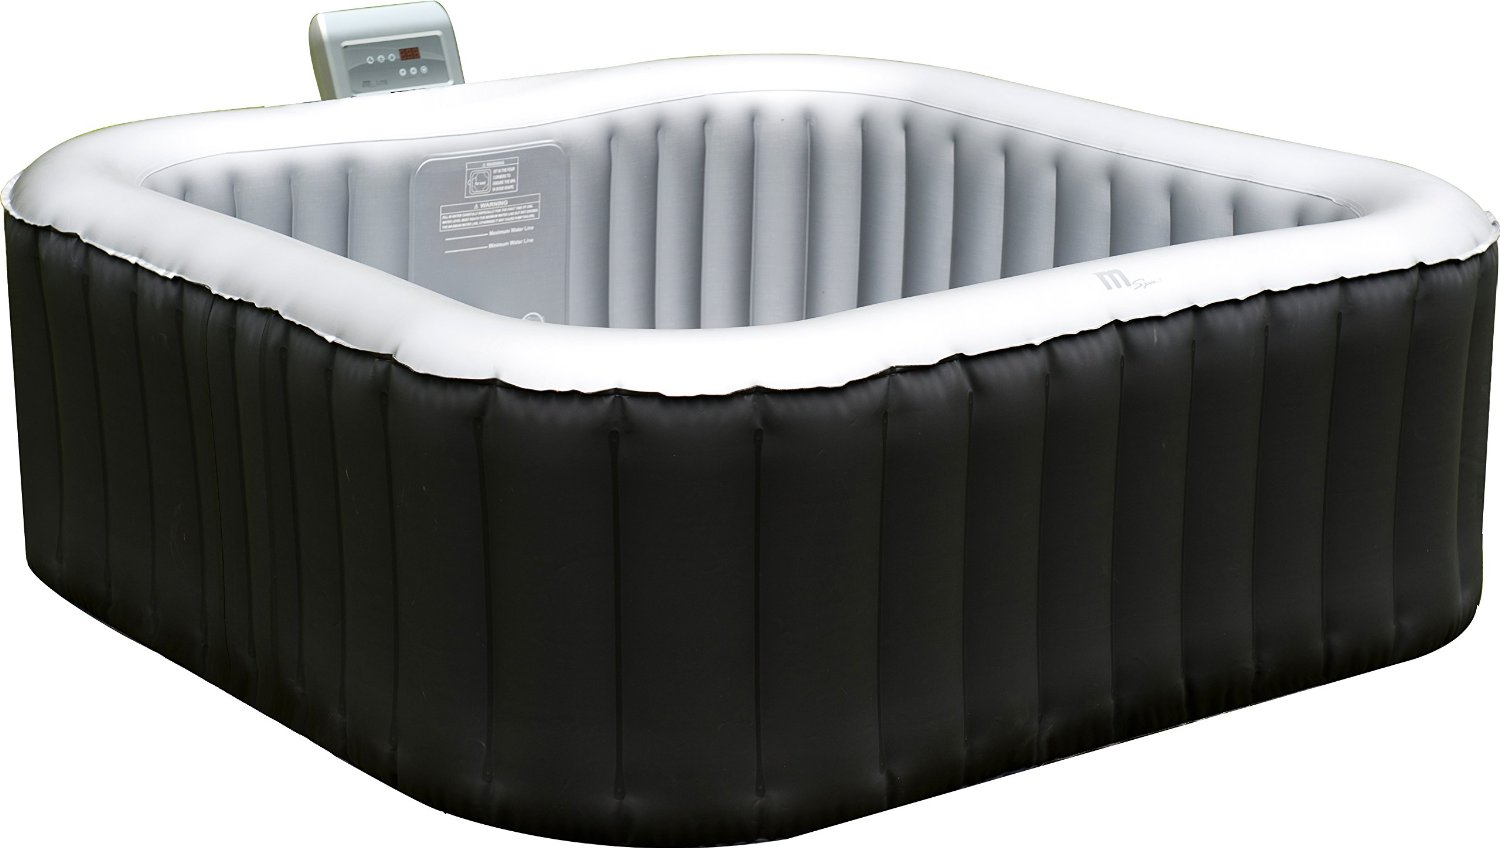 mspa alpine inflatable hot tub review inflatable hot tub. Black Bedroom Furniture Sets. Home Design Ideas